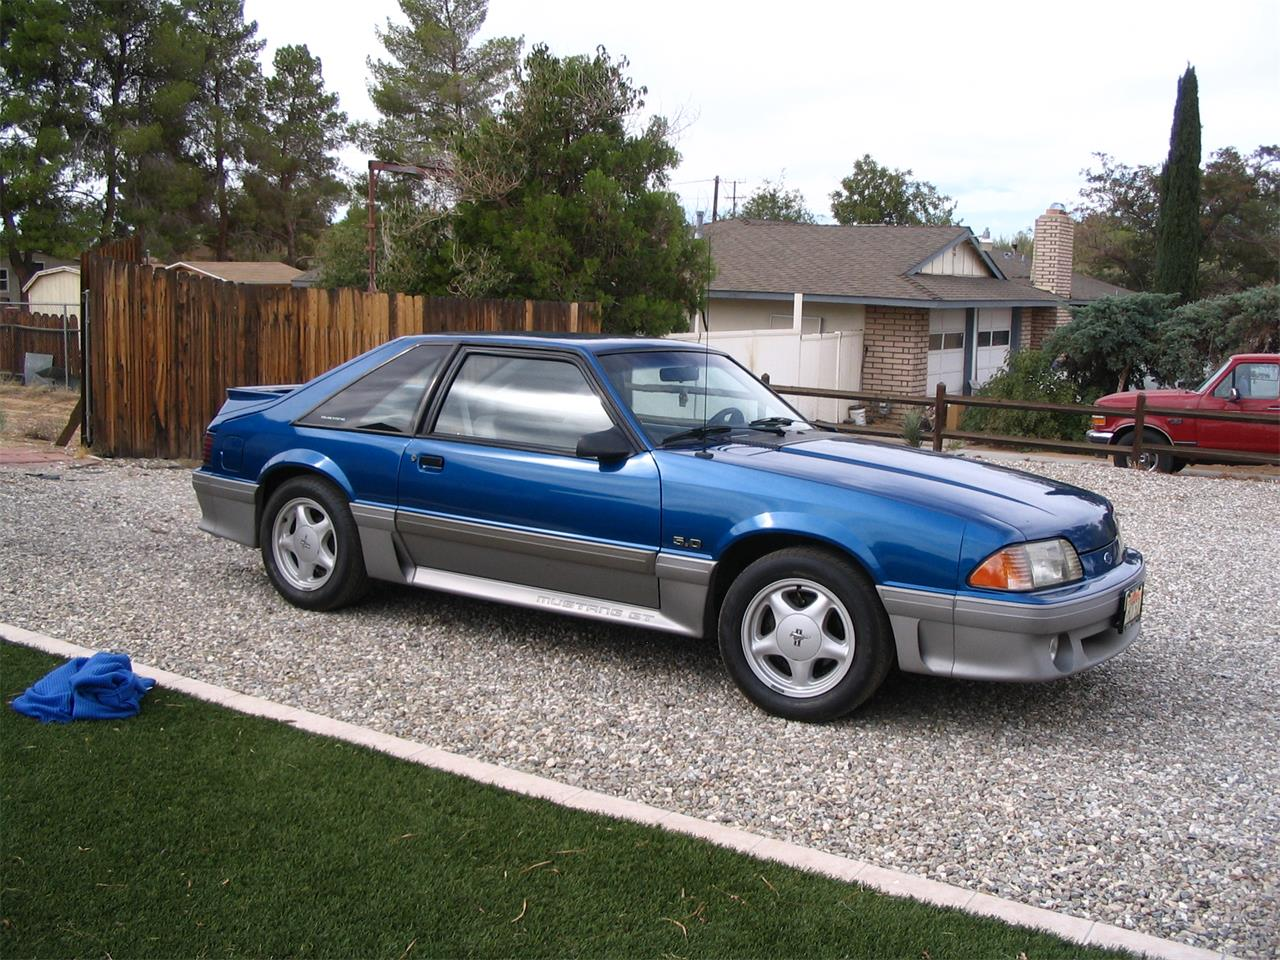 91 Mustang Gt >> For Sale 1991 Ford Mustang Gt In Apple Valley California